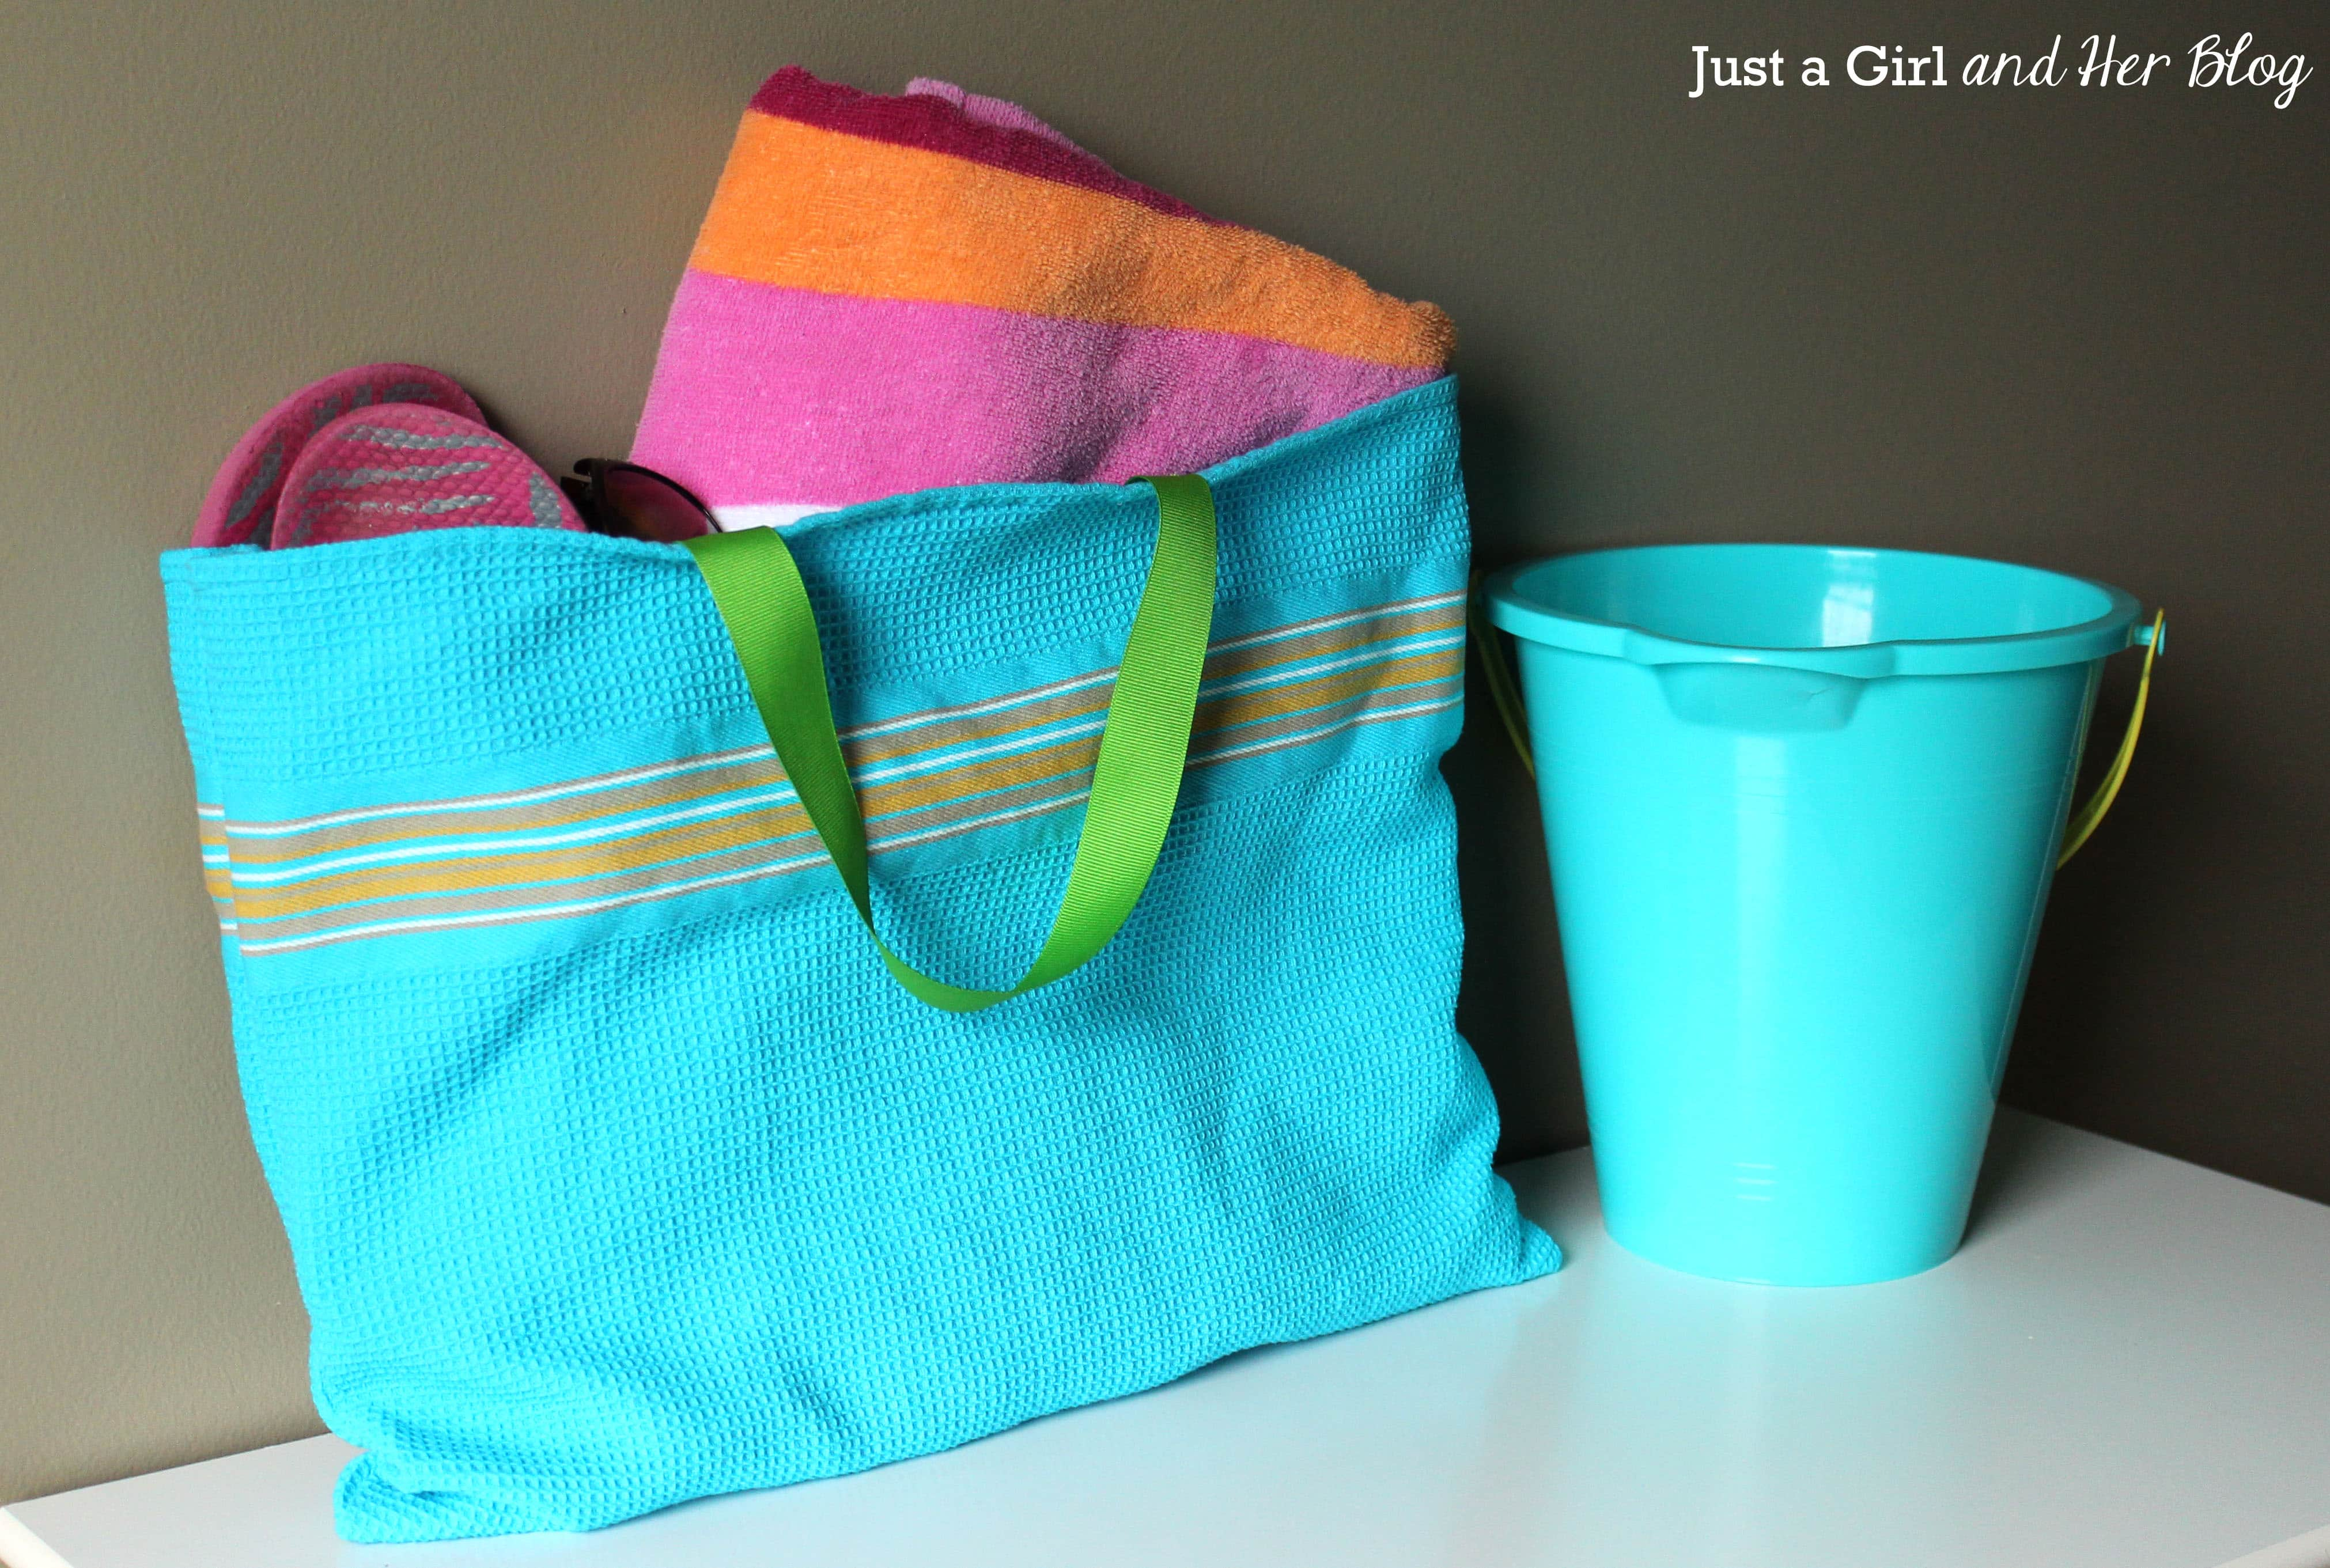 Mini ikea hack dish towel tote bag just a girl and her for Ikea beach towels